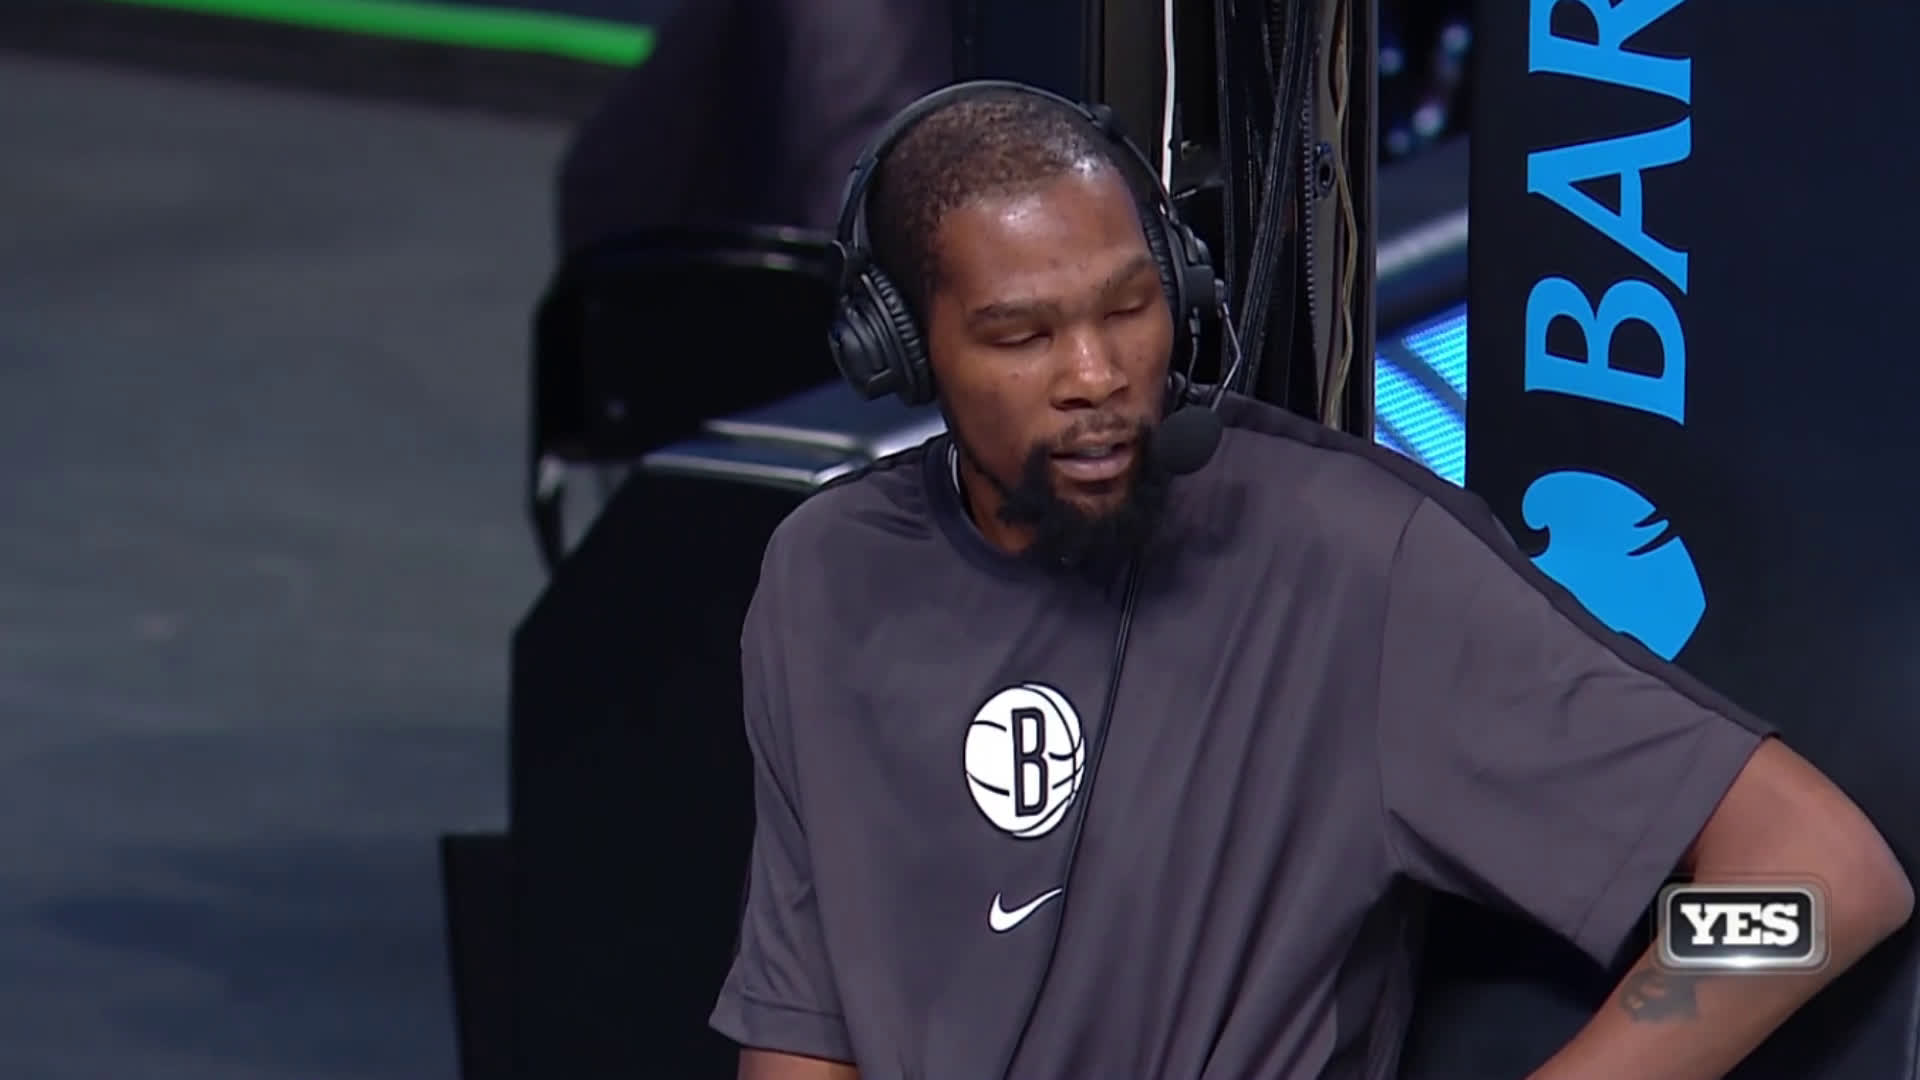 Kevin Durant post-game interview | Dec 13, 2020